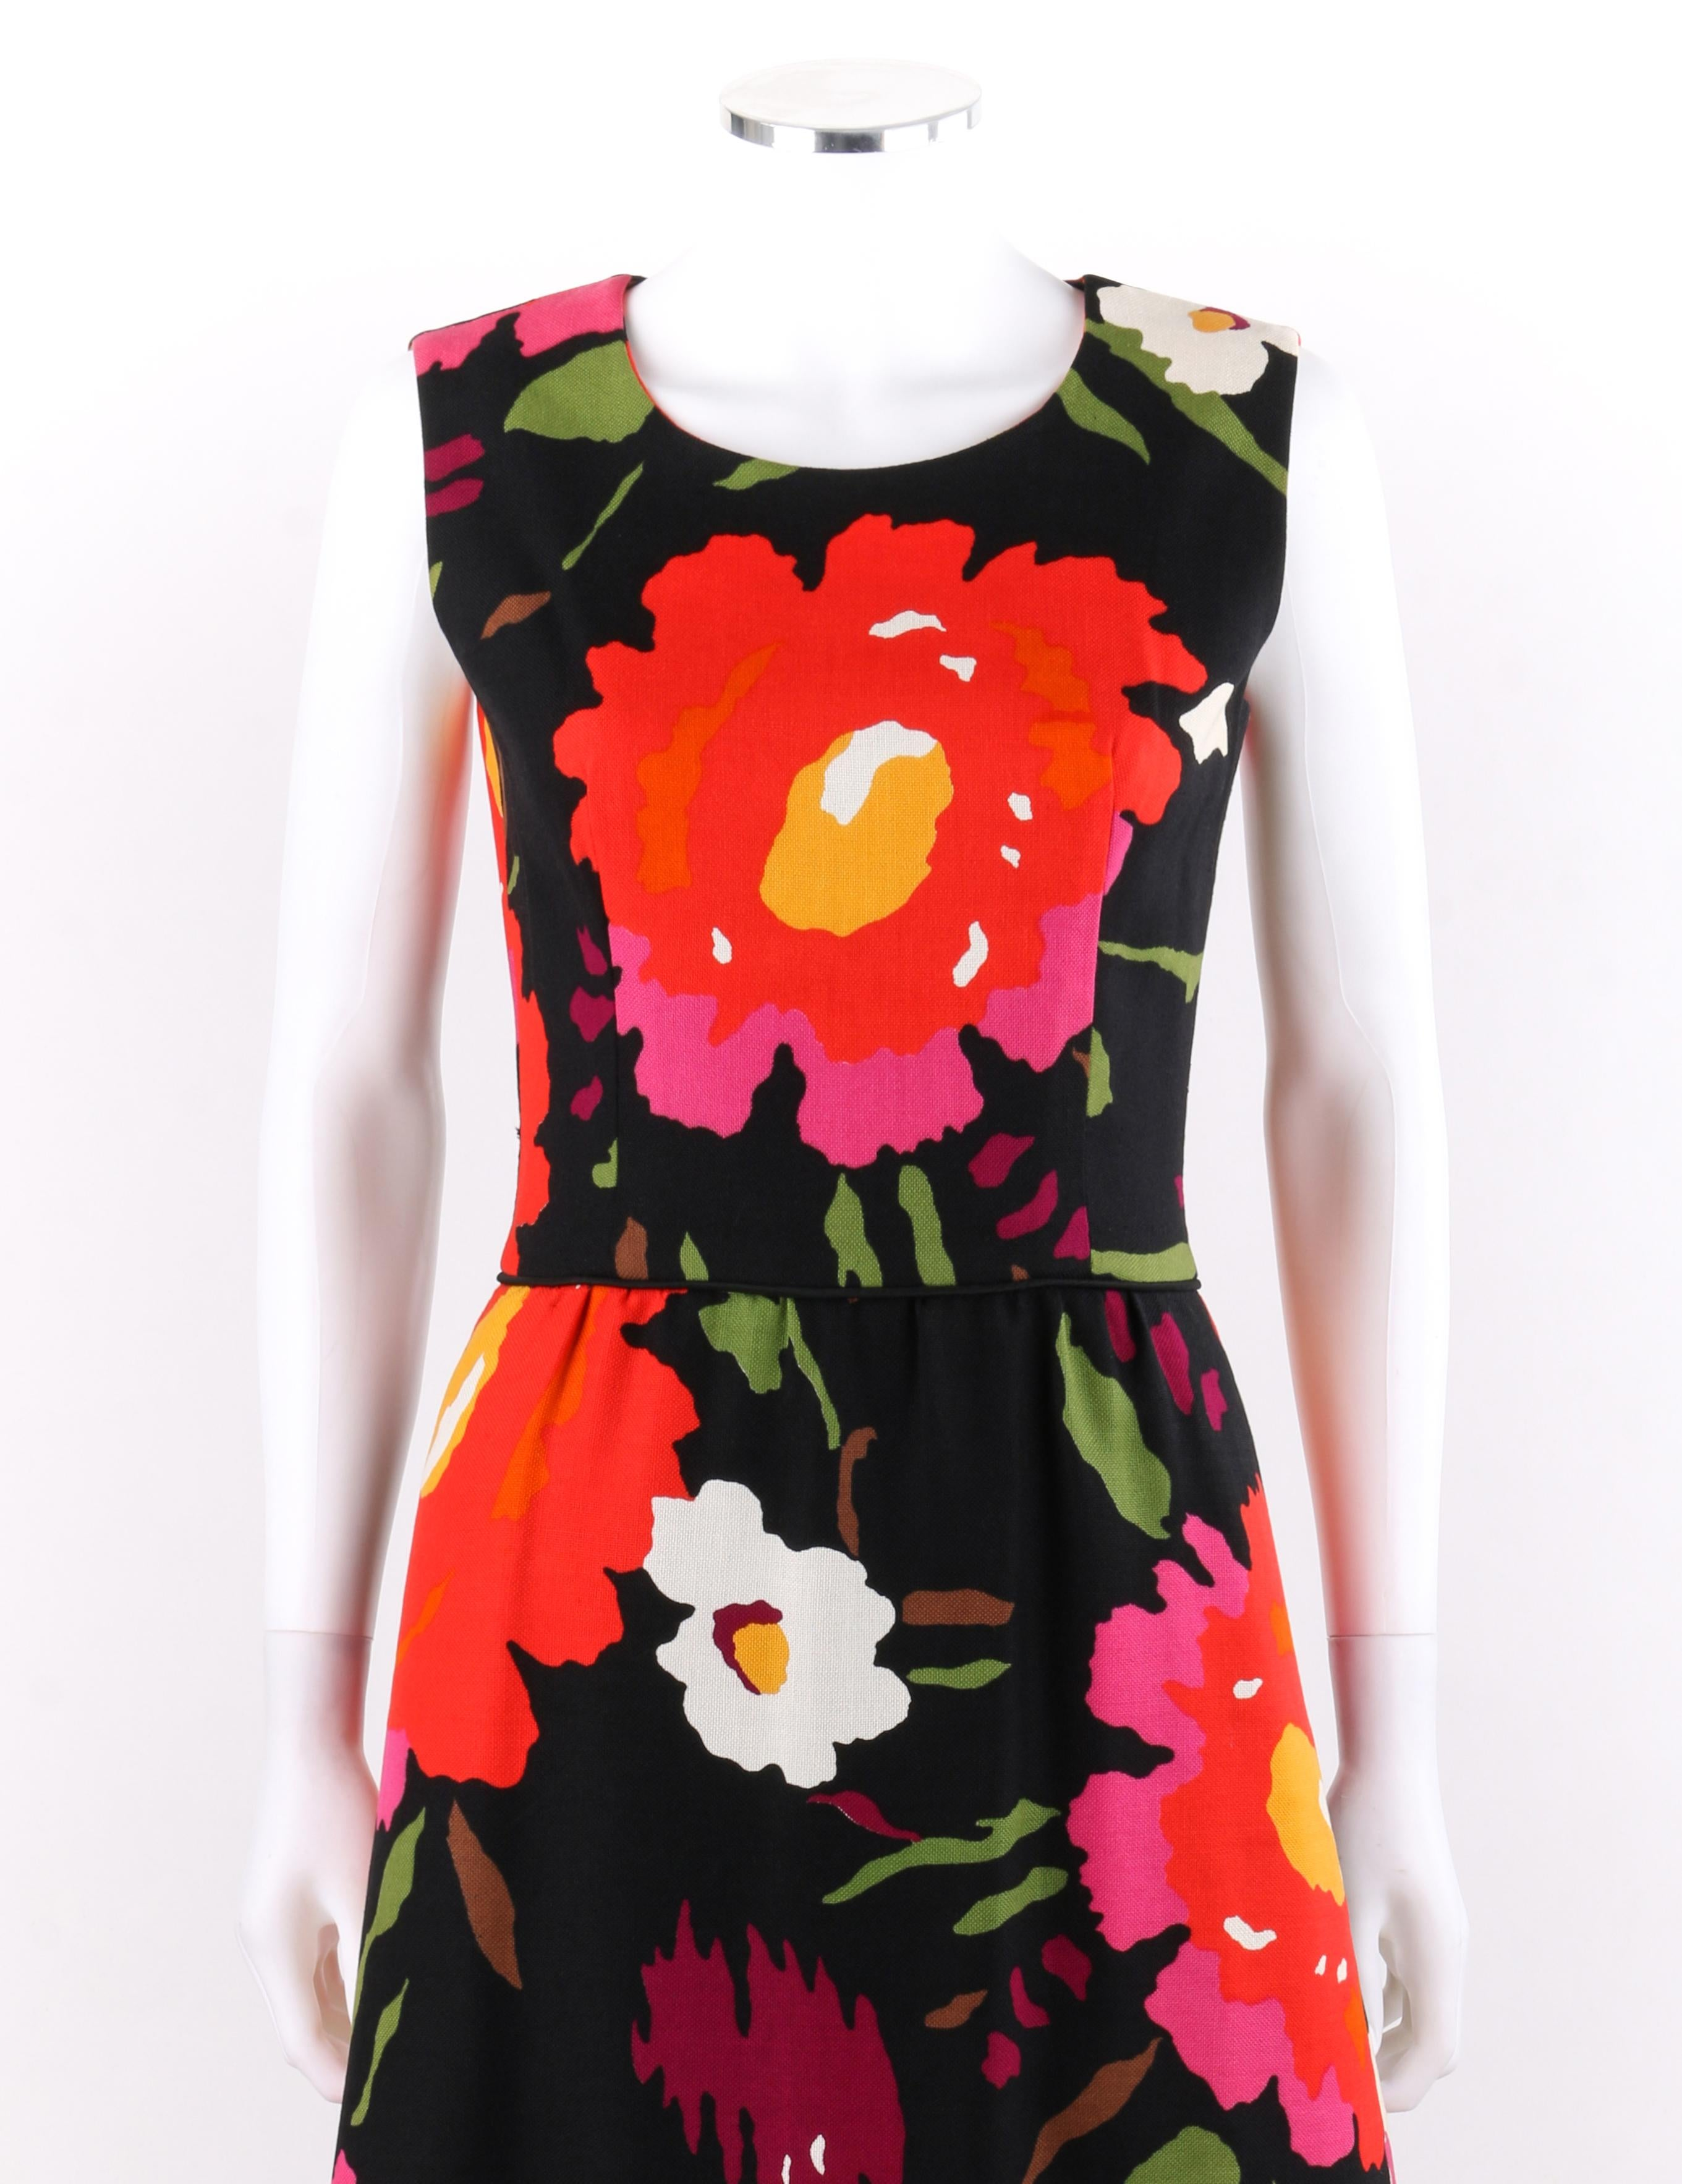 86ac85d27061b ROBES H.B.Z. Switzerland for Marshall Field's and Co. c.1960s Floral Shift  Dress For Sale at 1stdibs